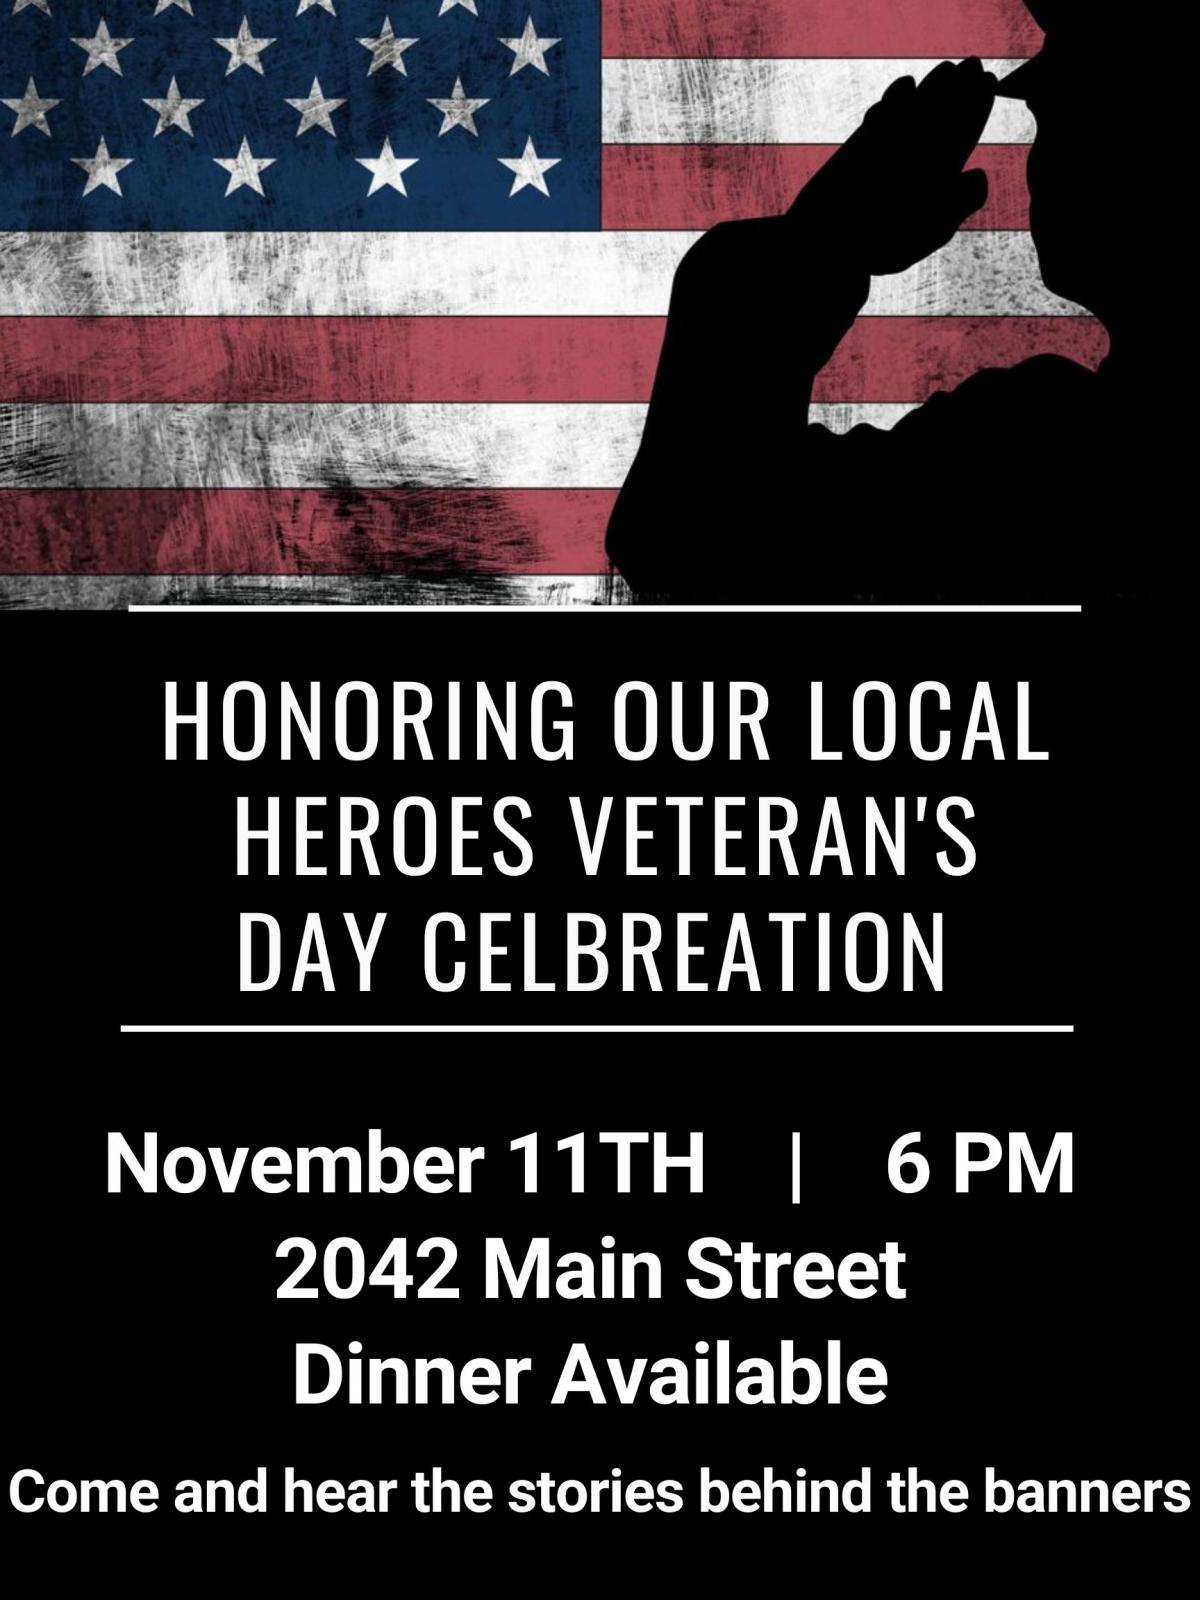 Honoring our Local Heros Veterans Day Celebration Photo